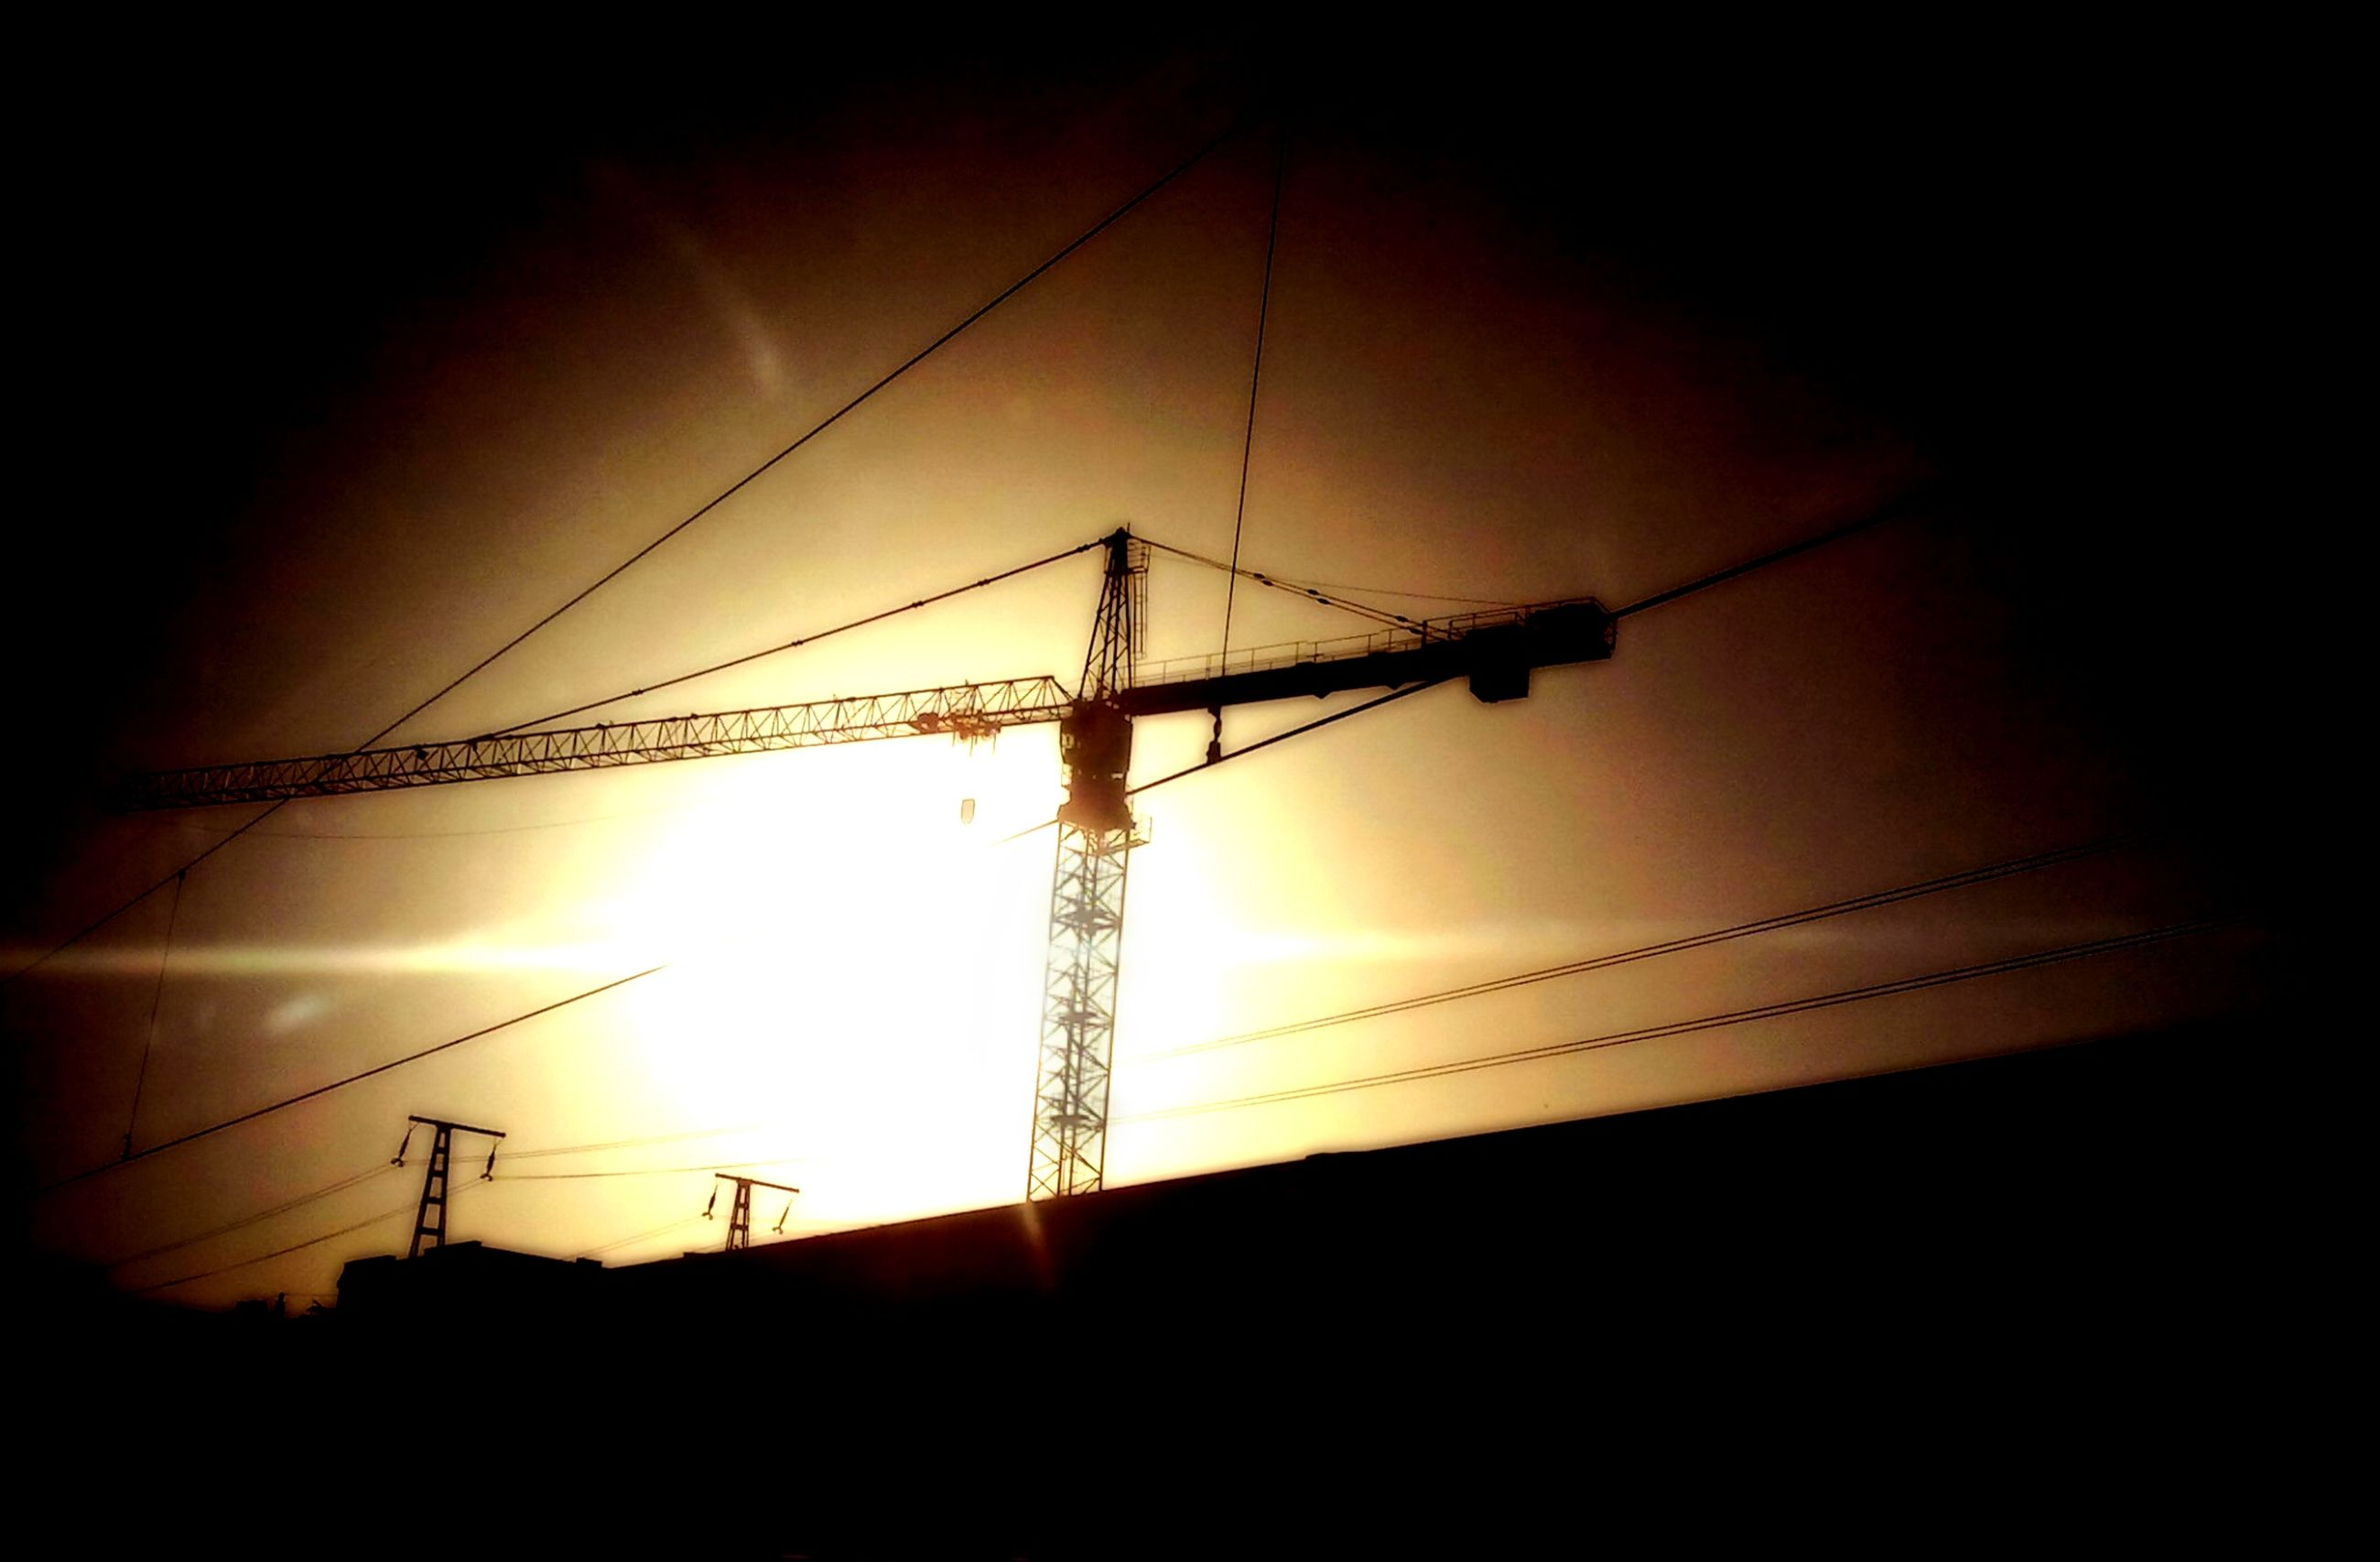 silhouette, sunset, low angle view, electricity, sky, power line, electricity pylon, sun, fuel and power generation, power supply, connection, dark, technology, built structure, cable, dusk, sunlight, no people, orange color, outdoors